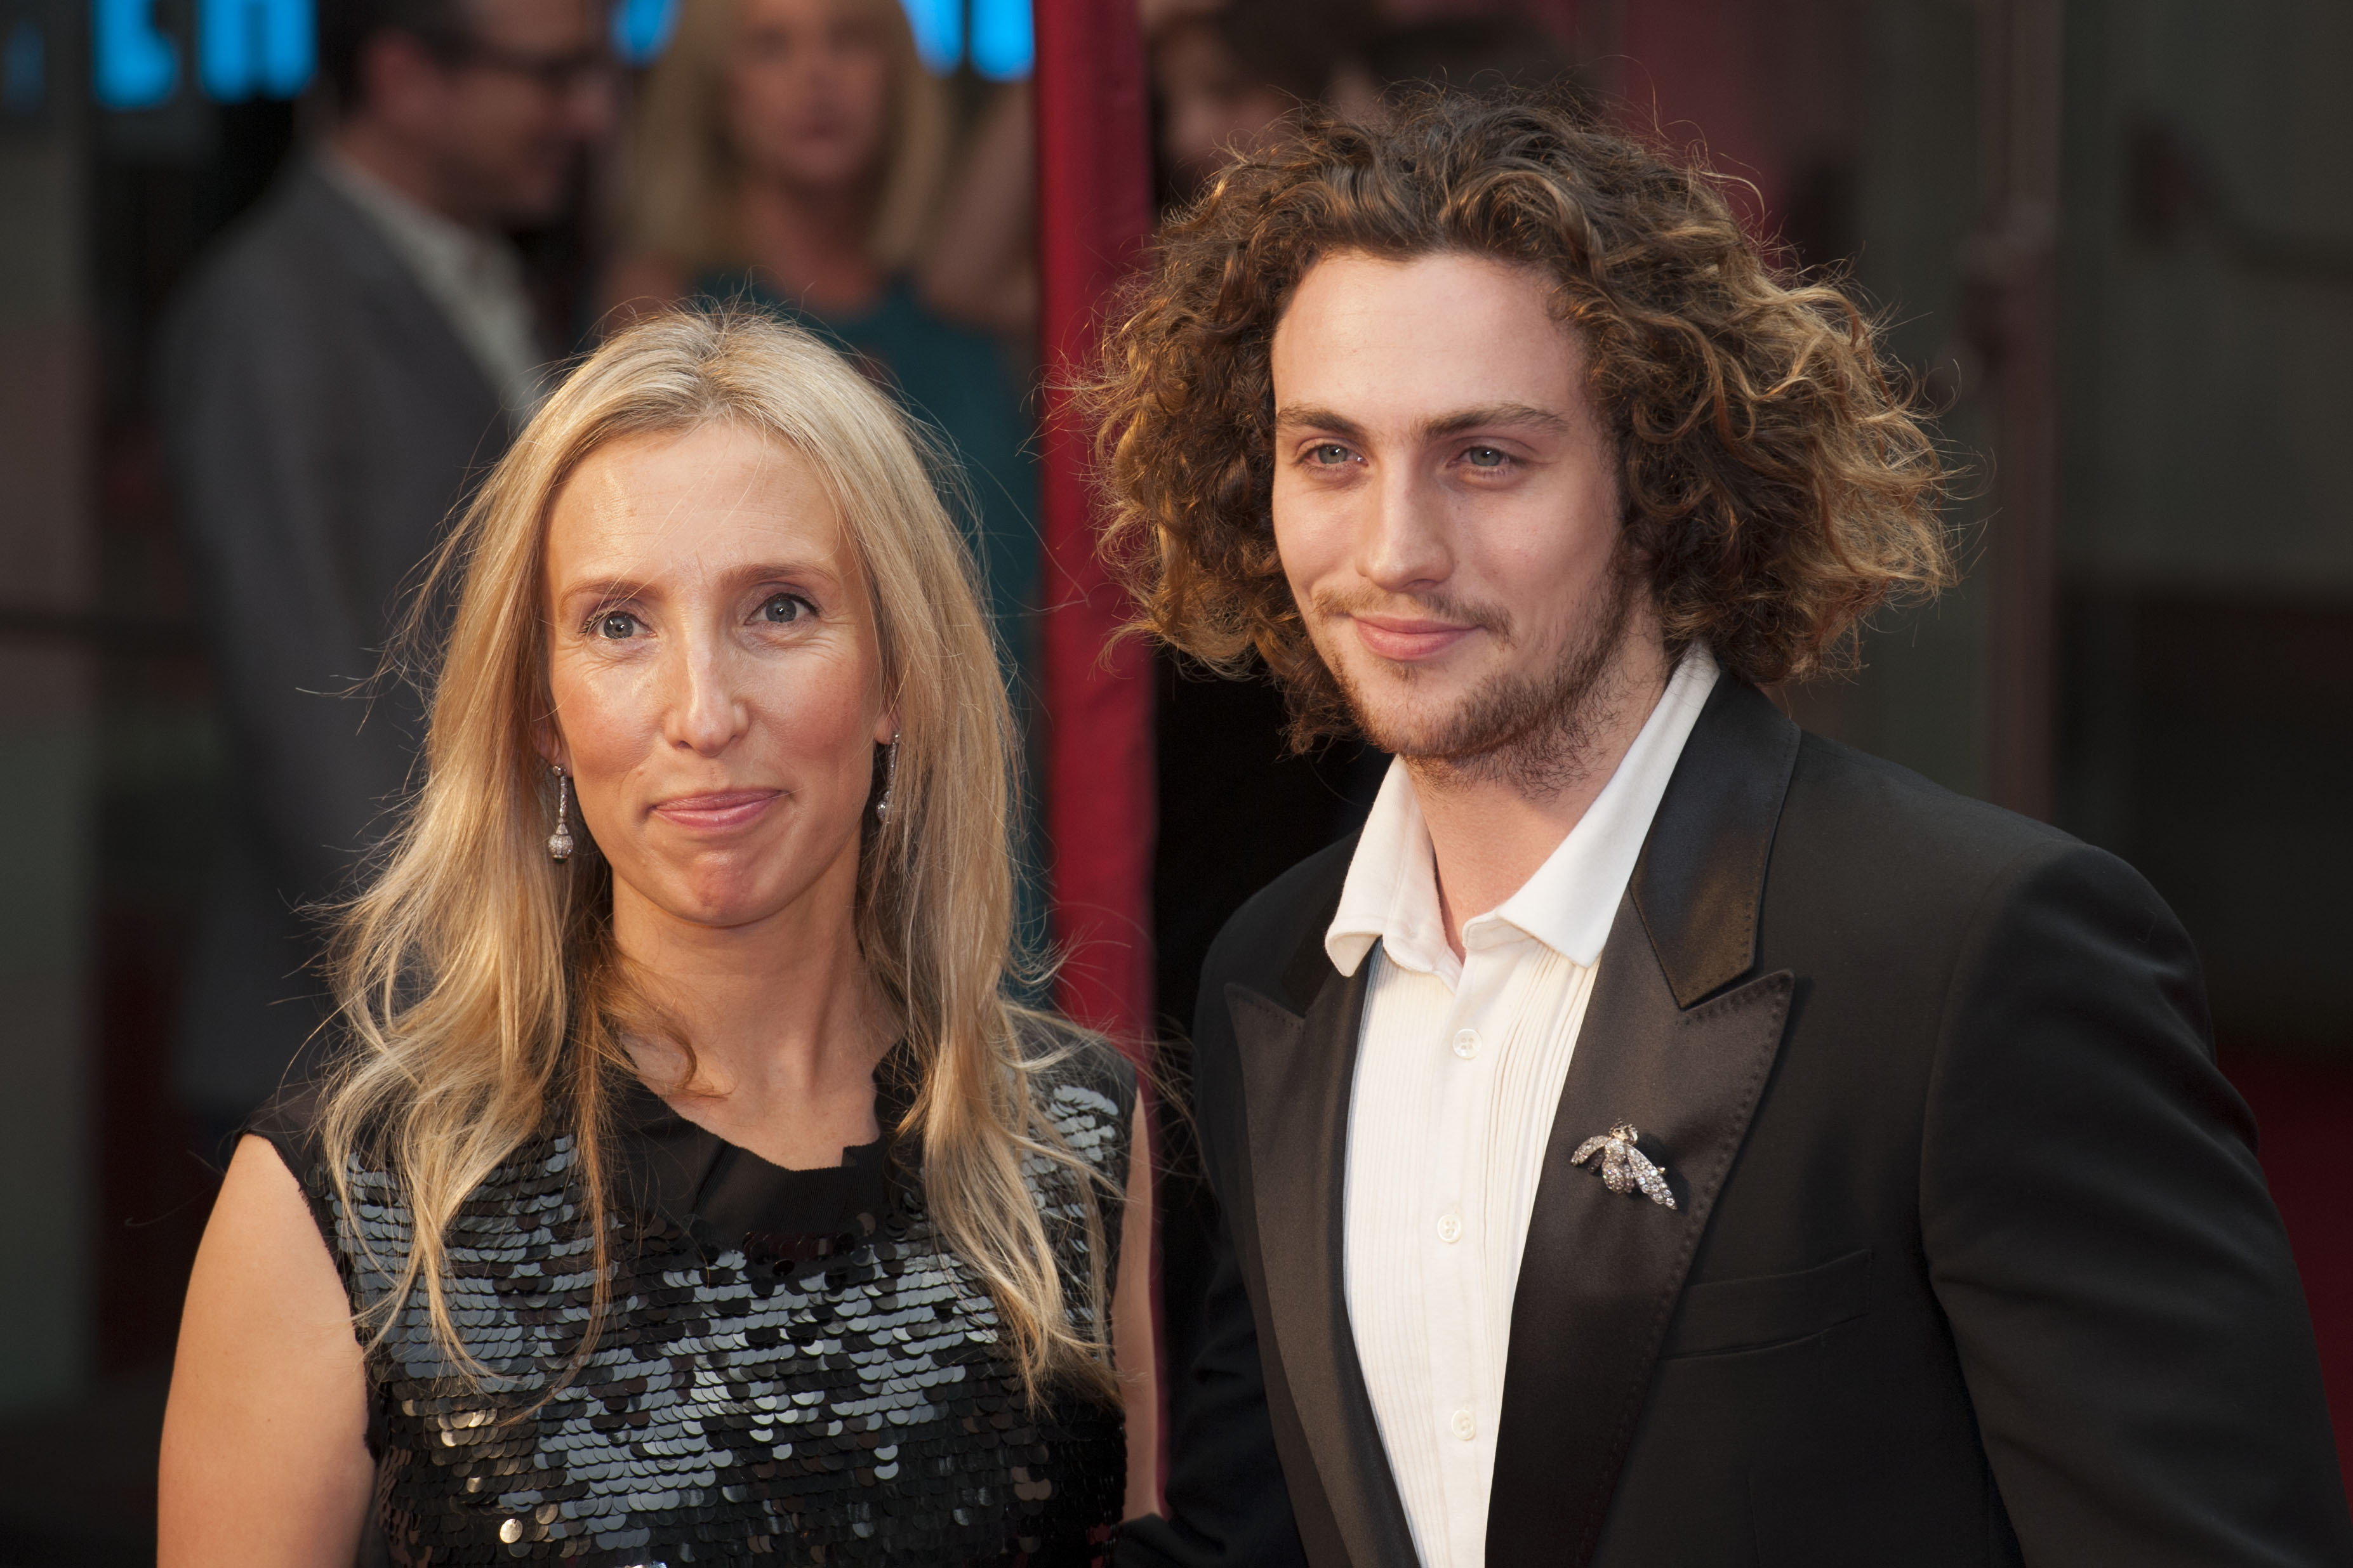 Married couple Sam and Aaron Taylor-Johnson relationships with big age difference